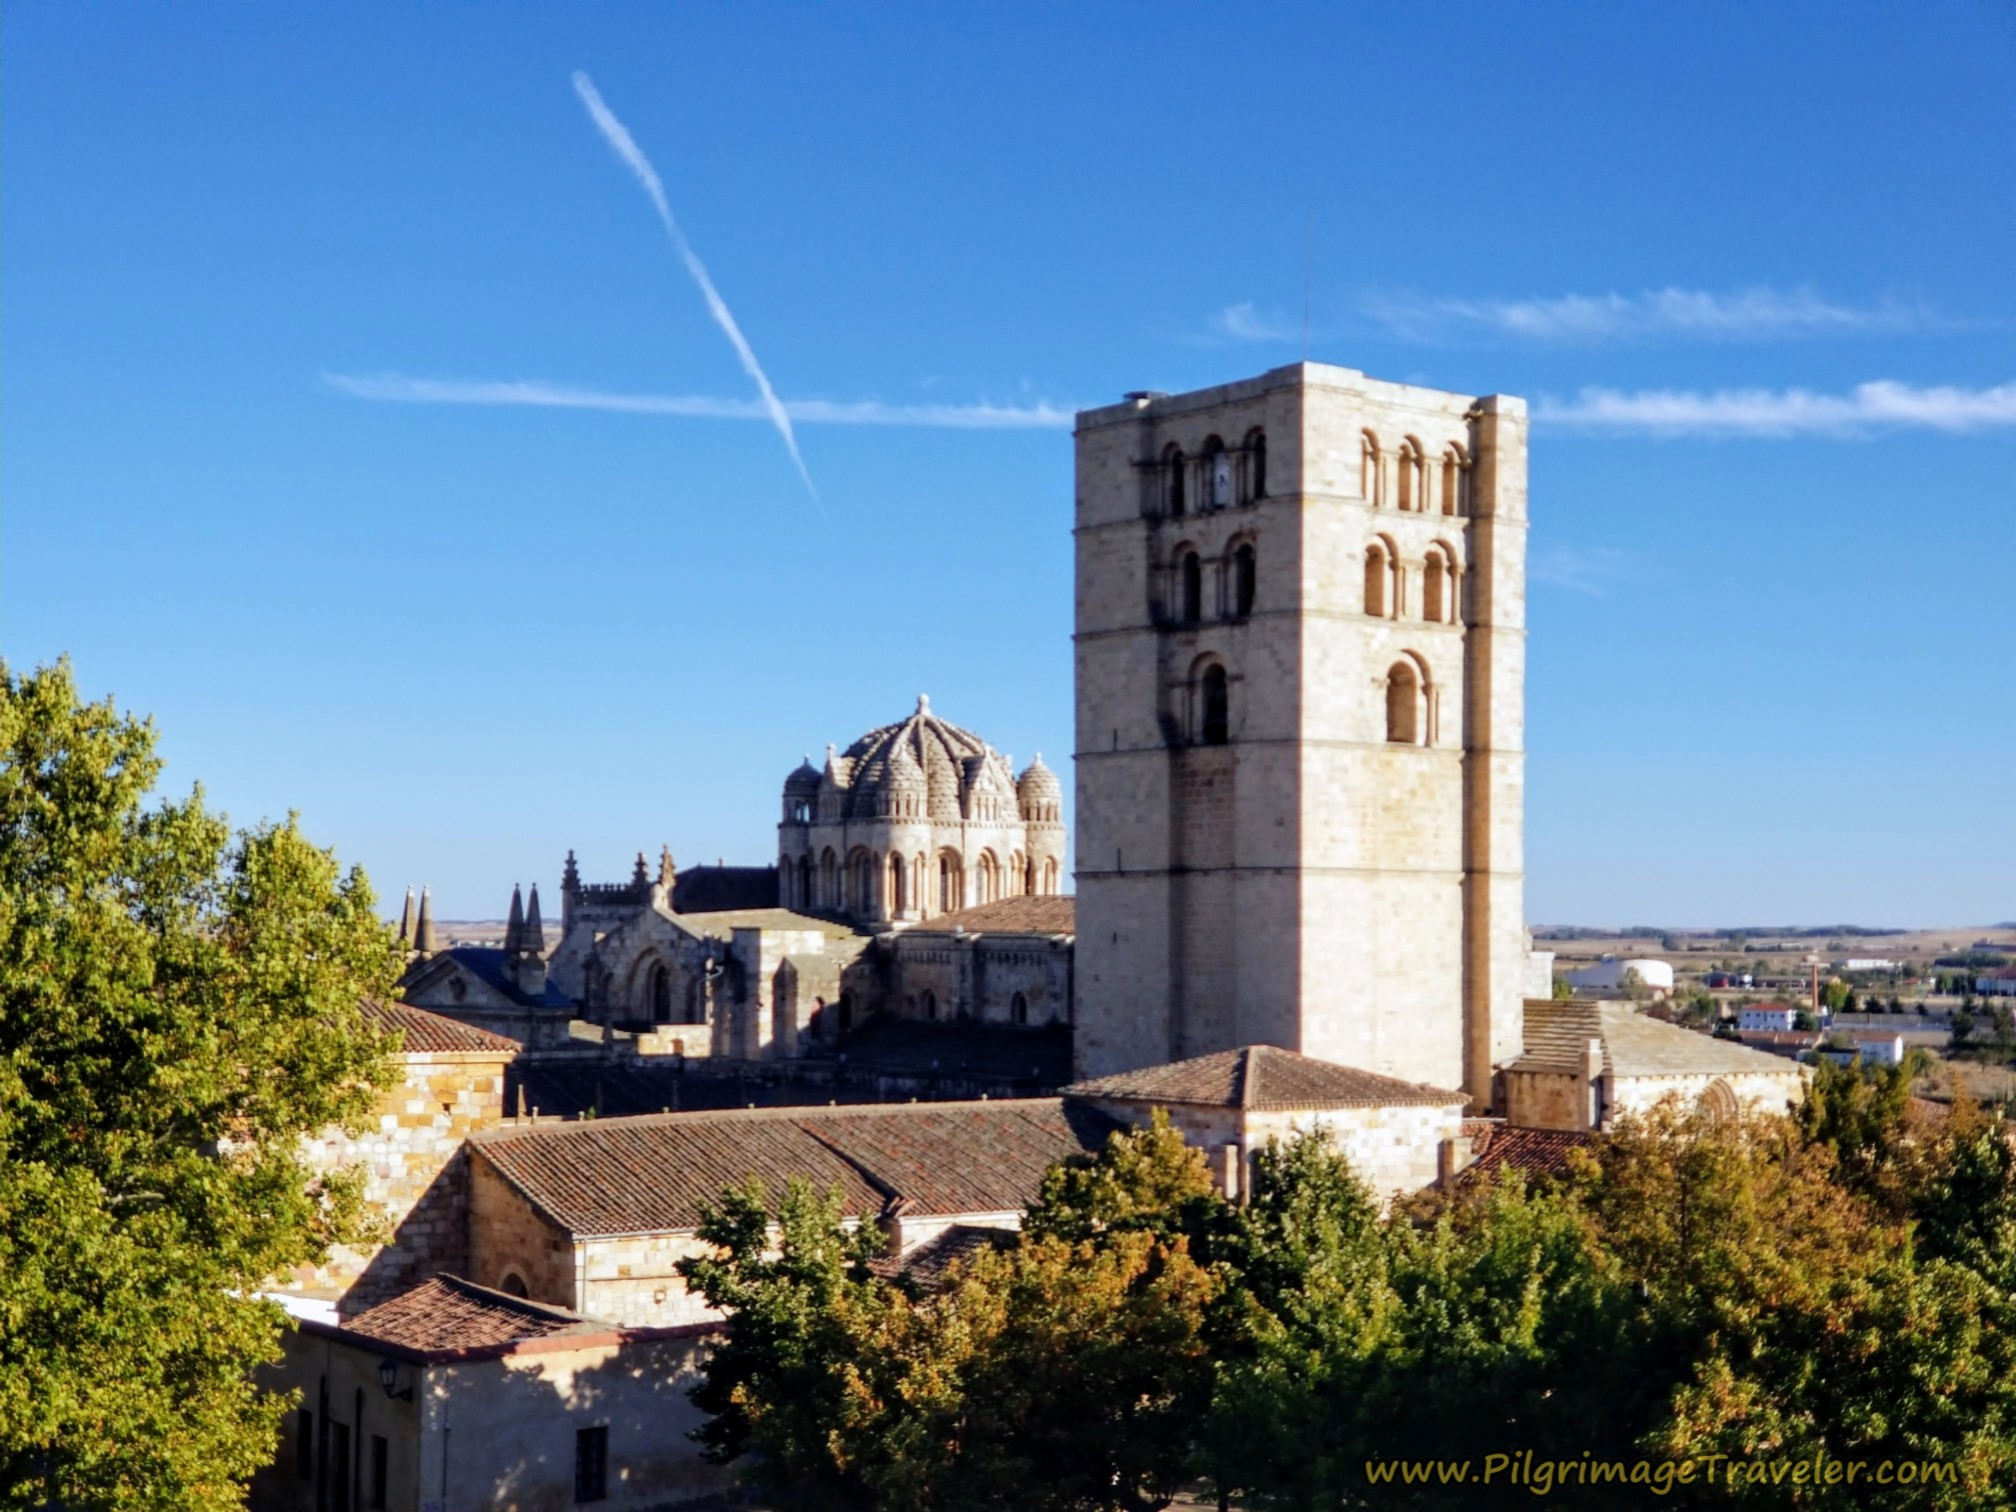 BIrd's Eye View of Zamora Cathedral